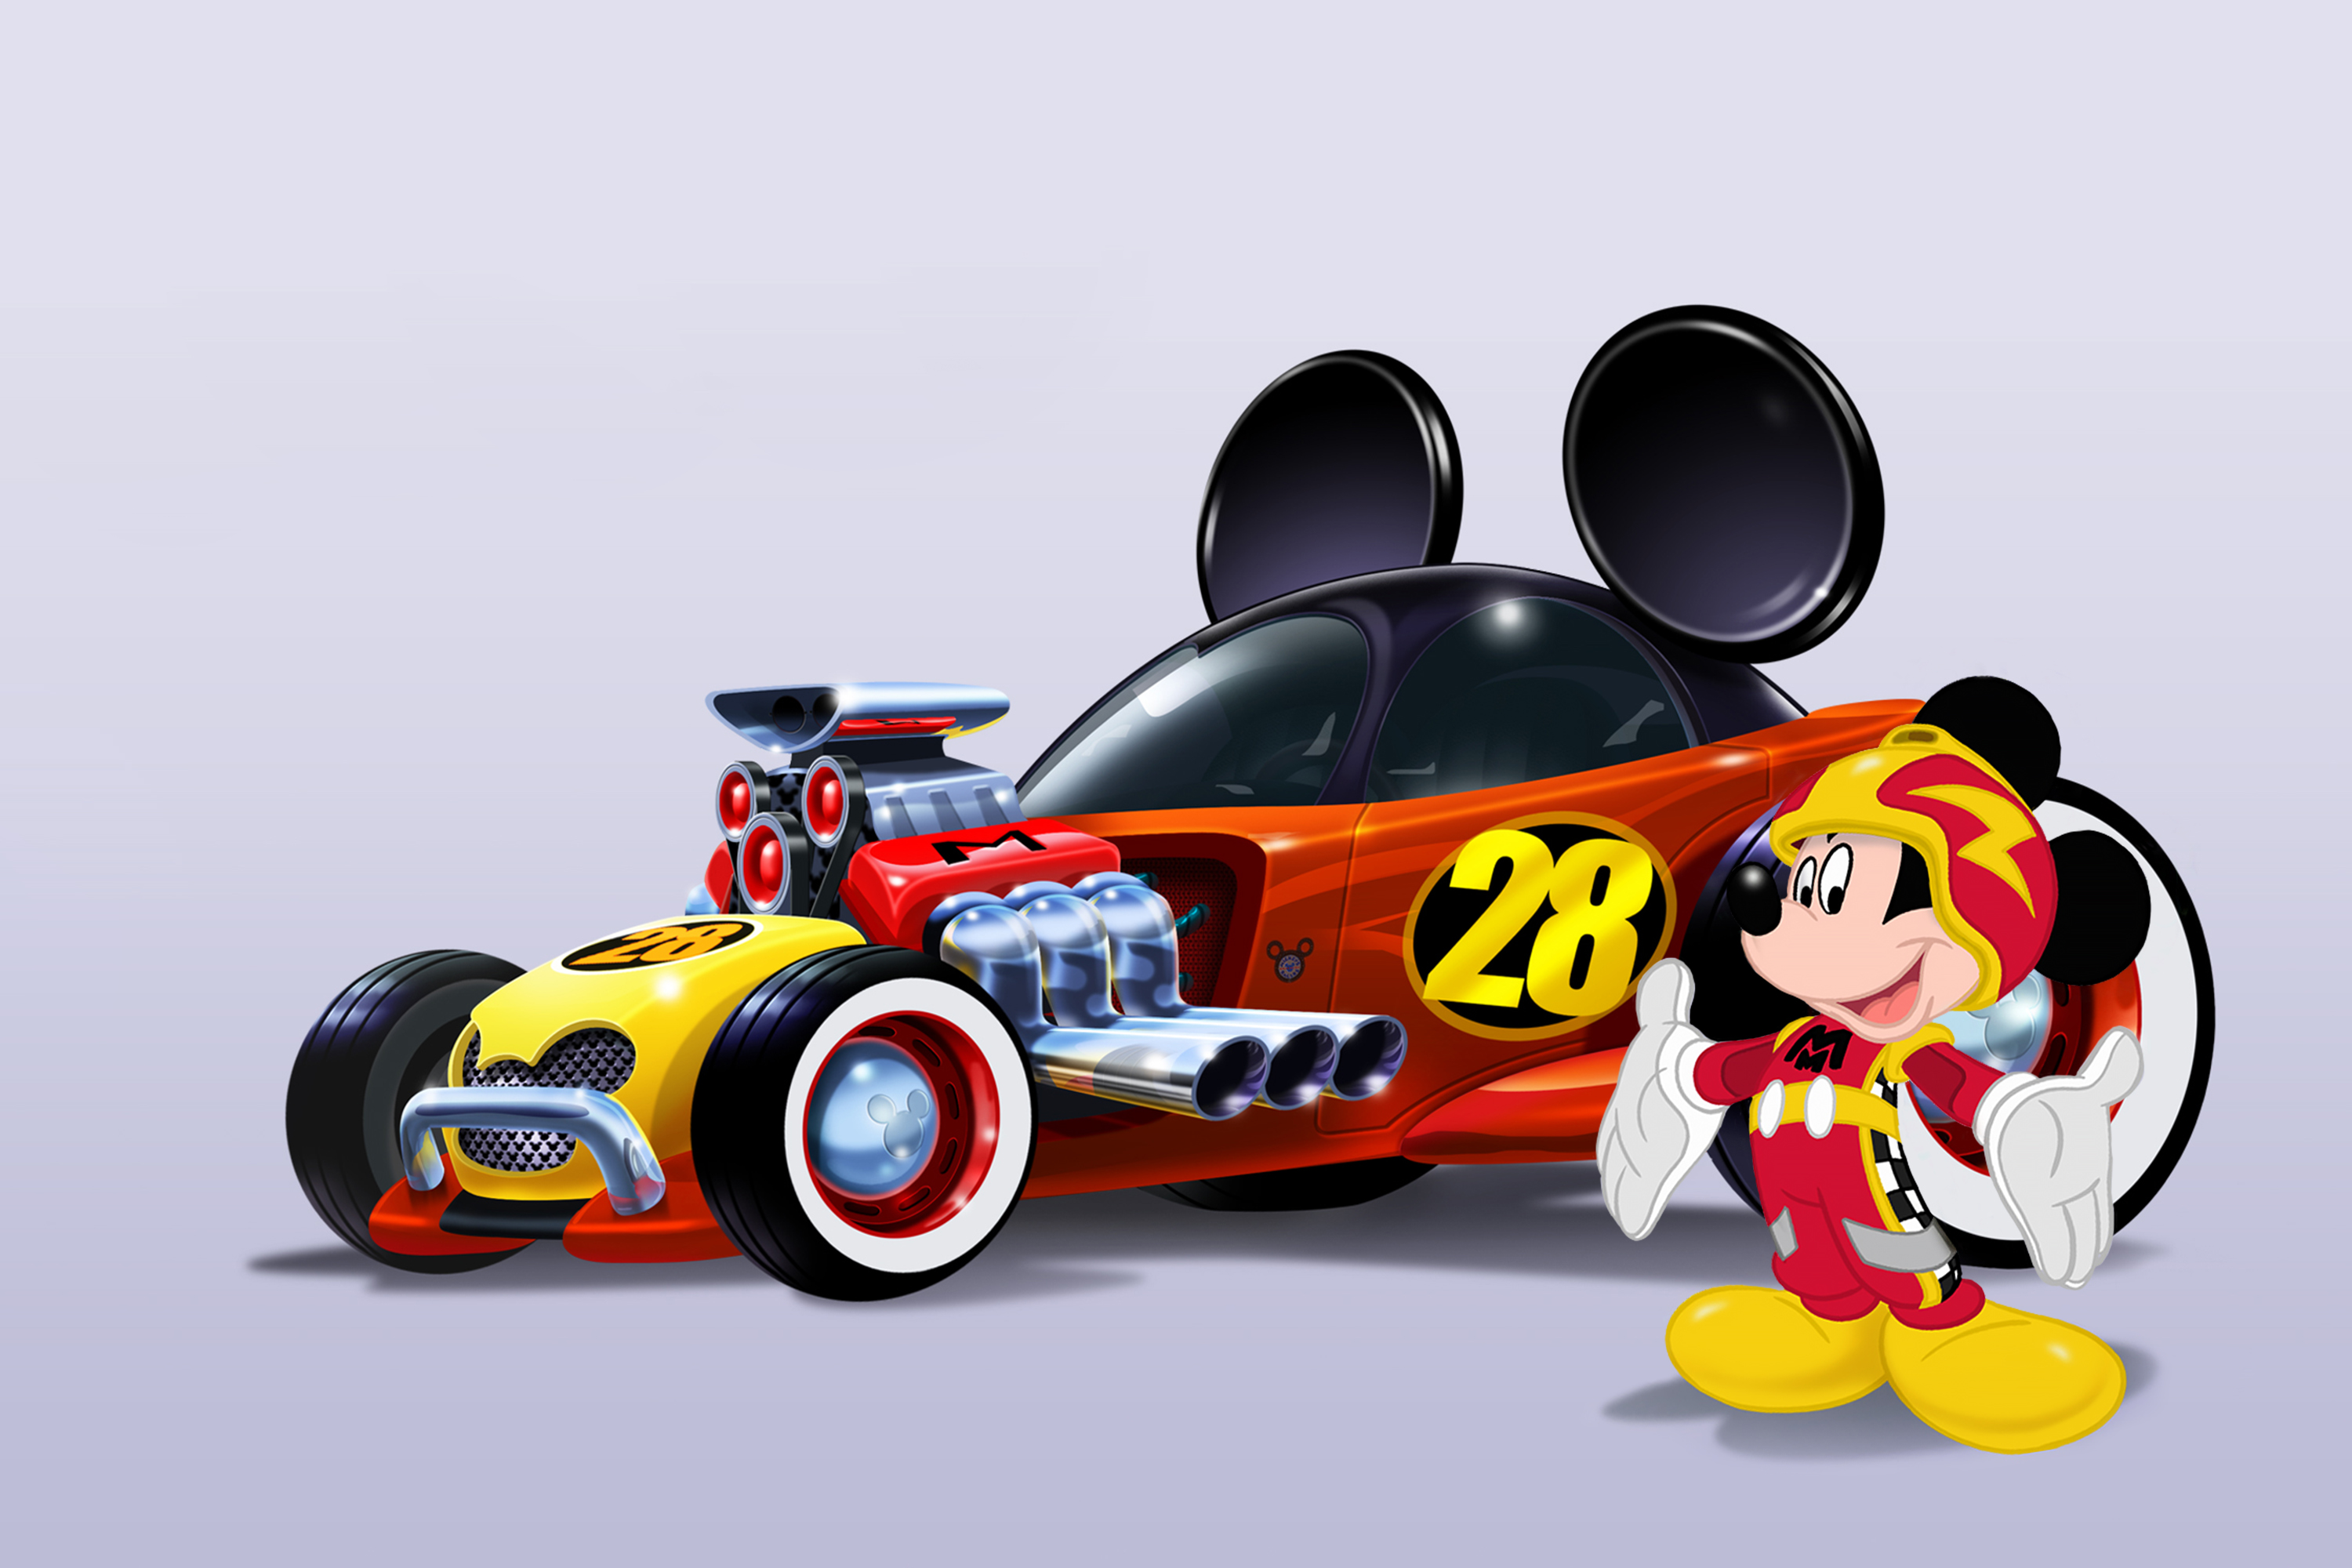 Mickey and the Roadster Racers to Premiere on Disney Junior in 2017